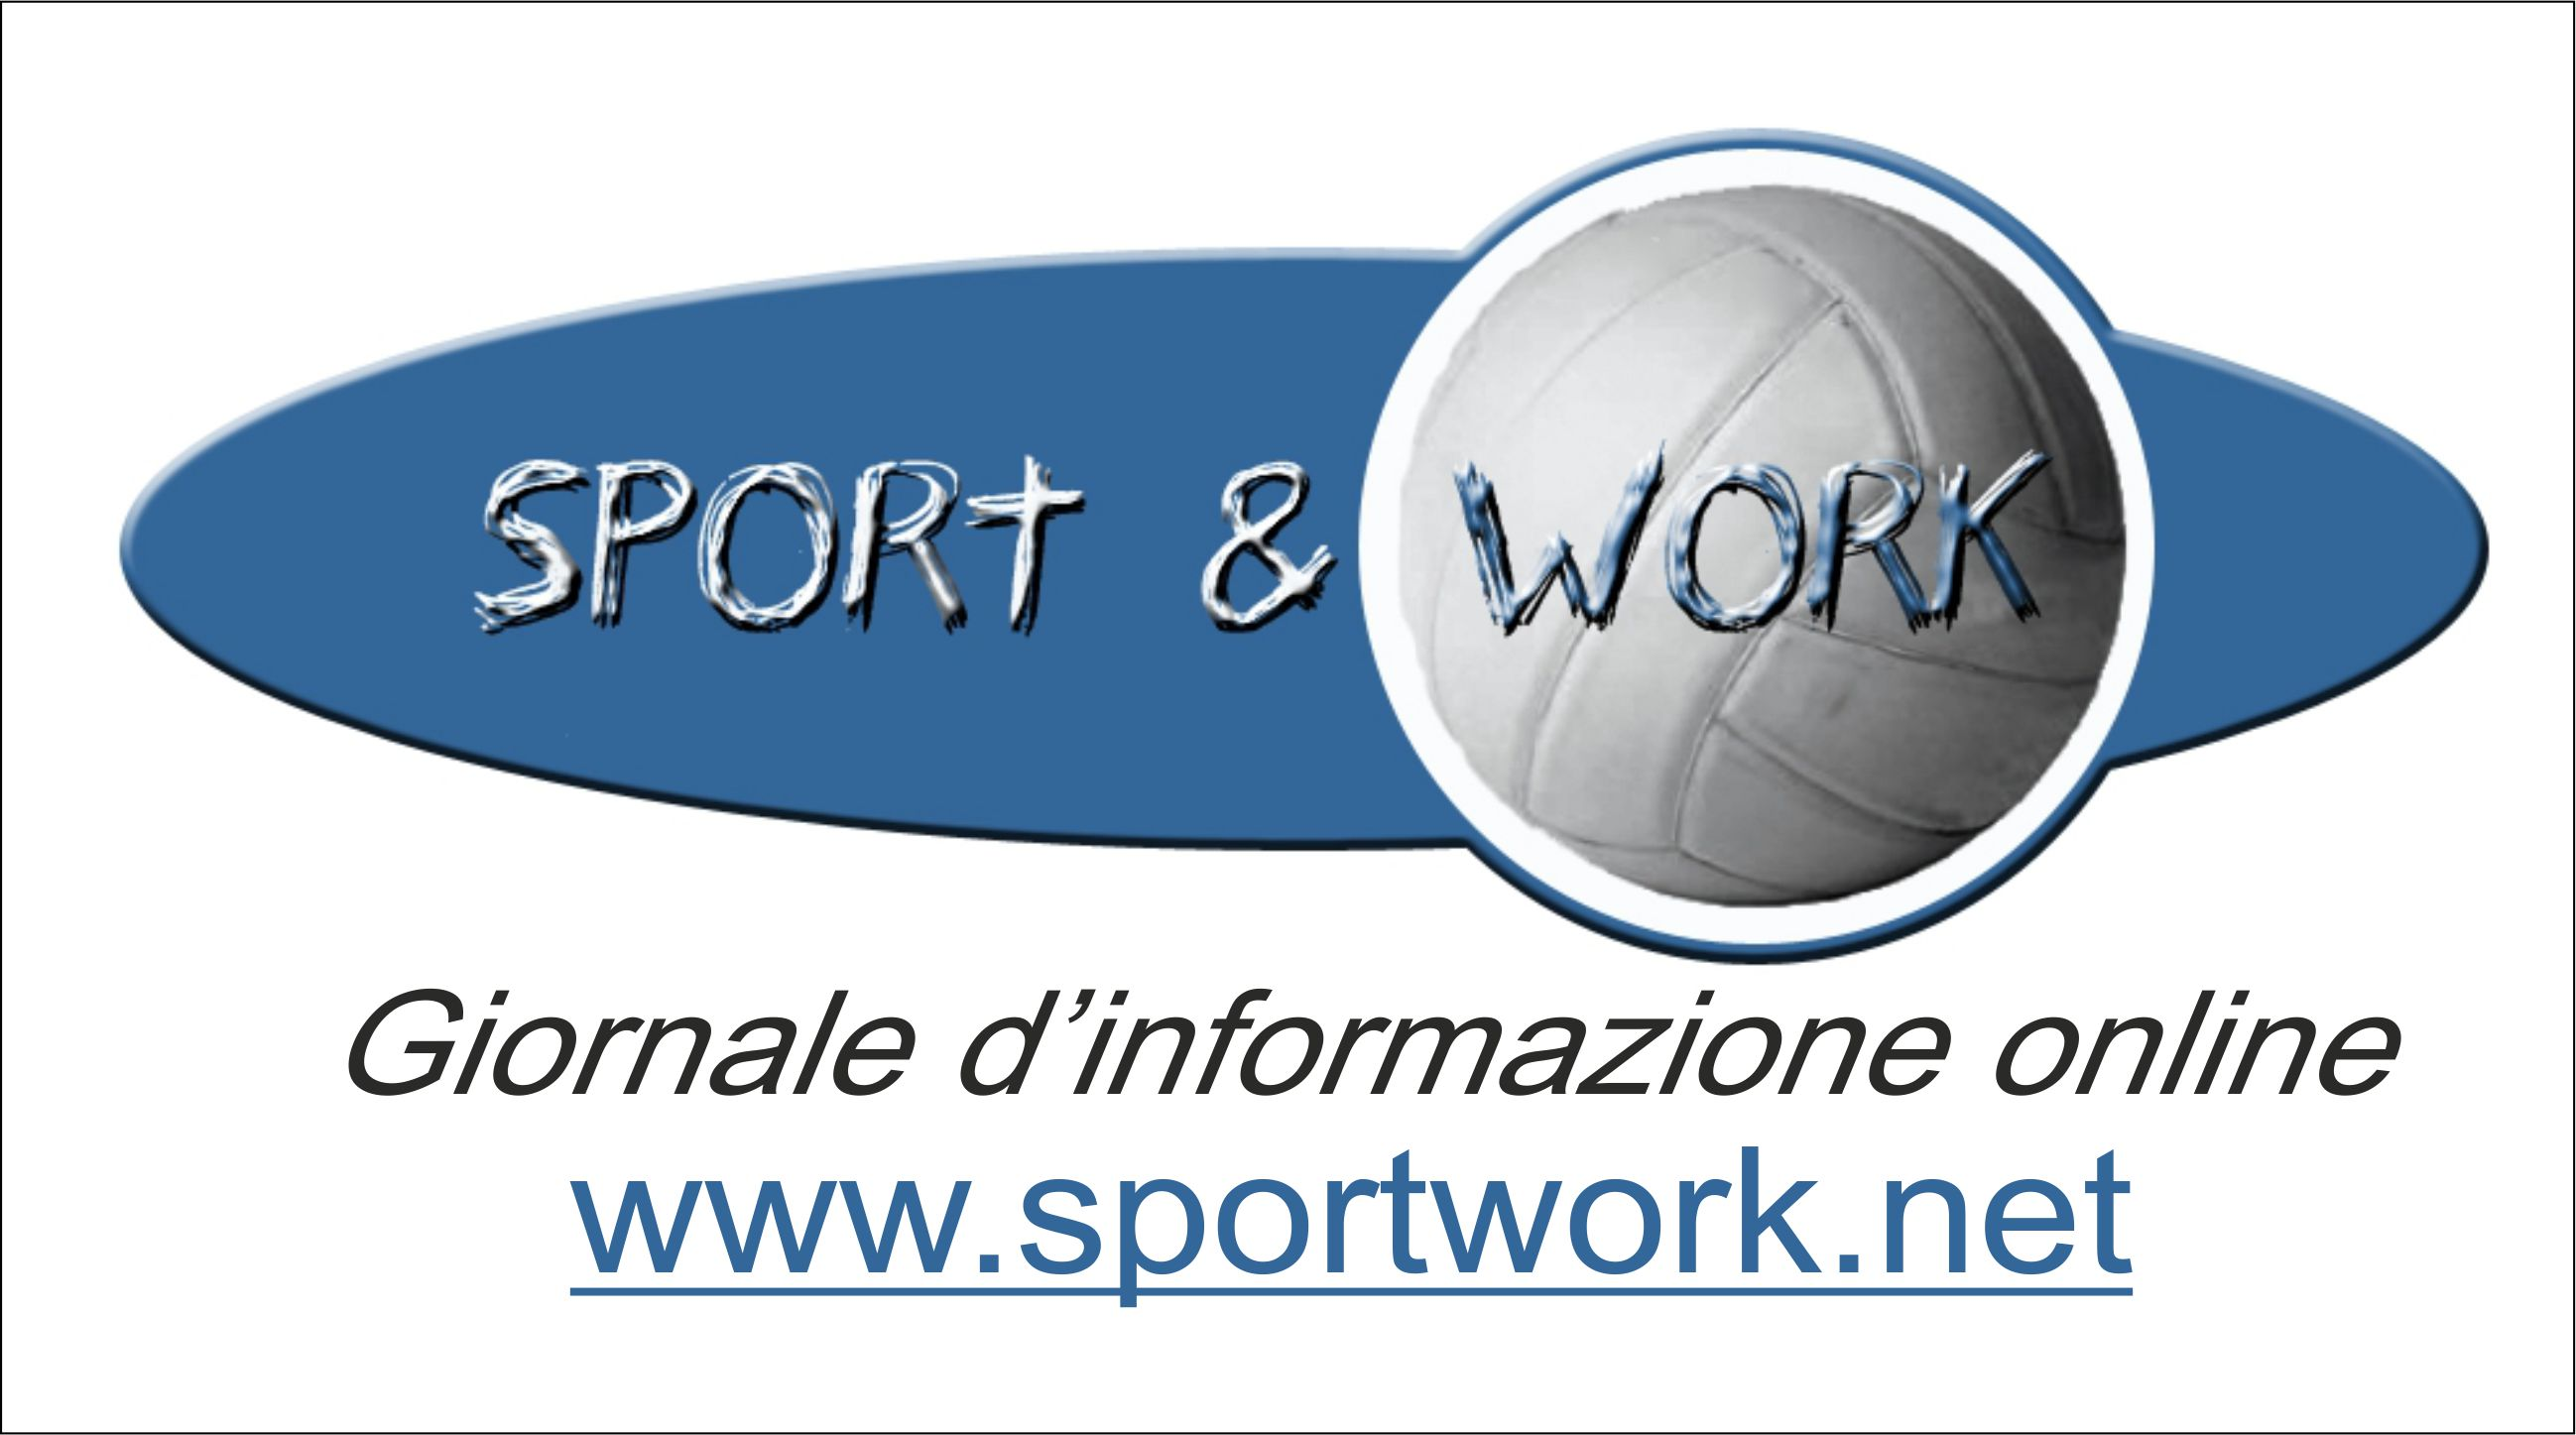 Sport & Work, entra nel team!